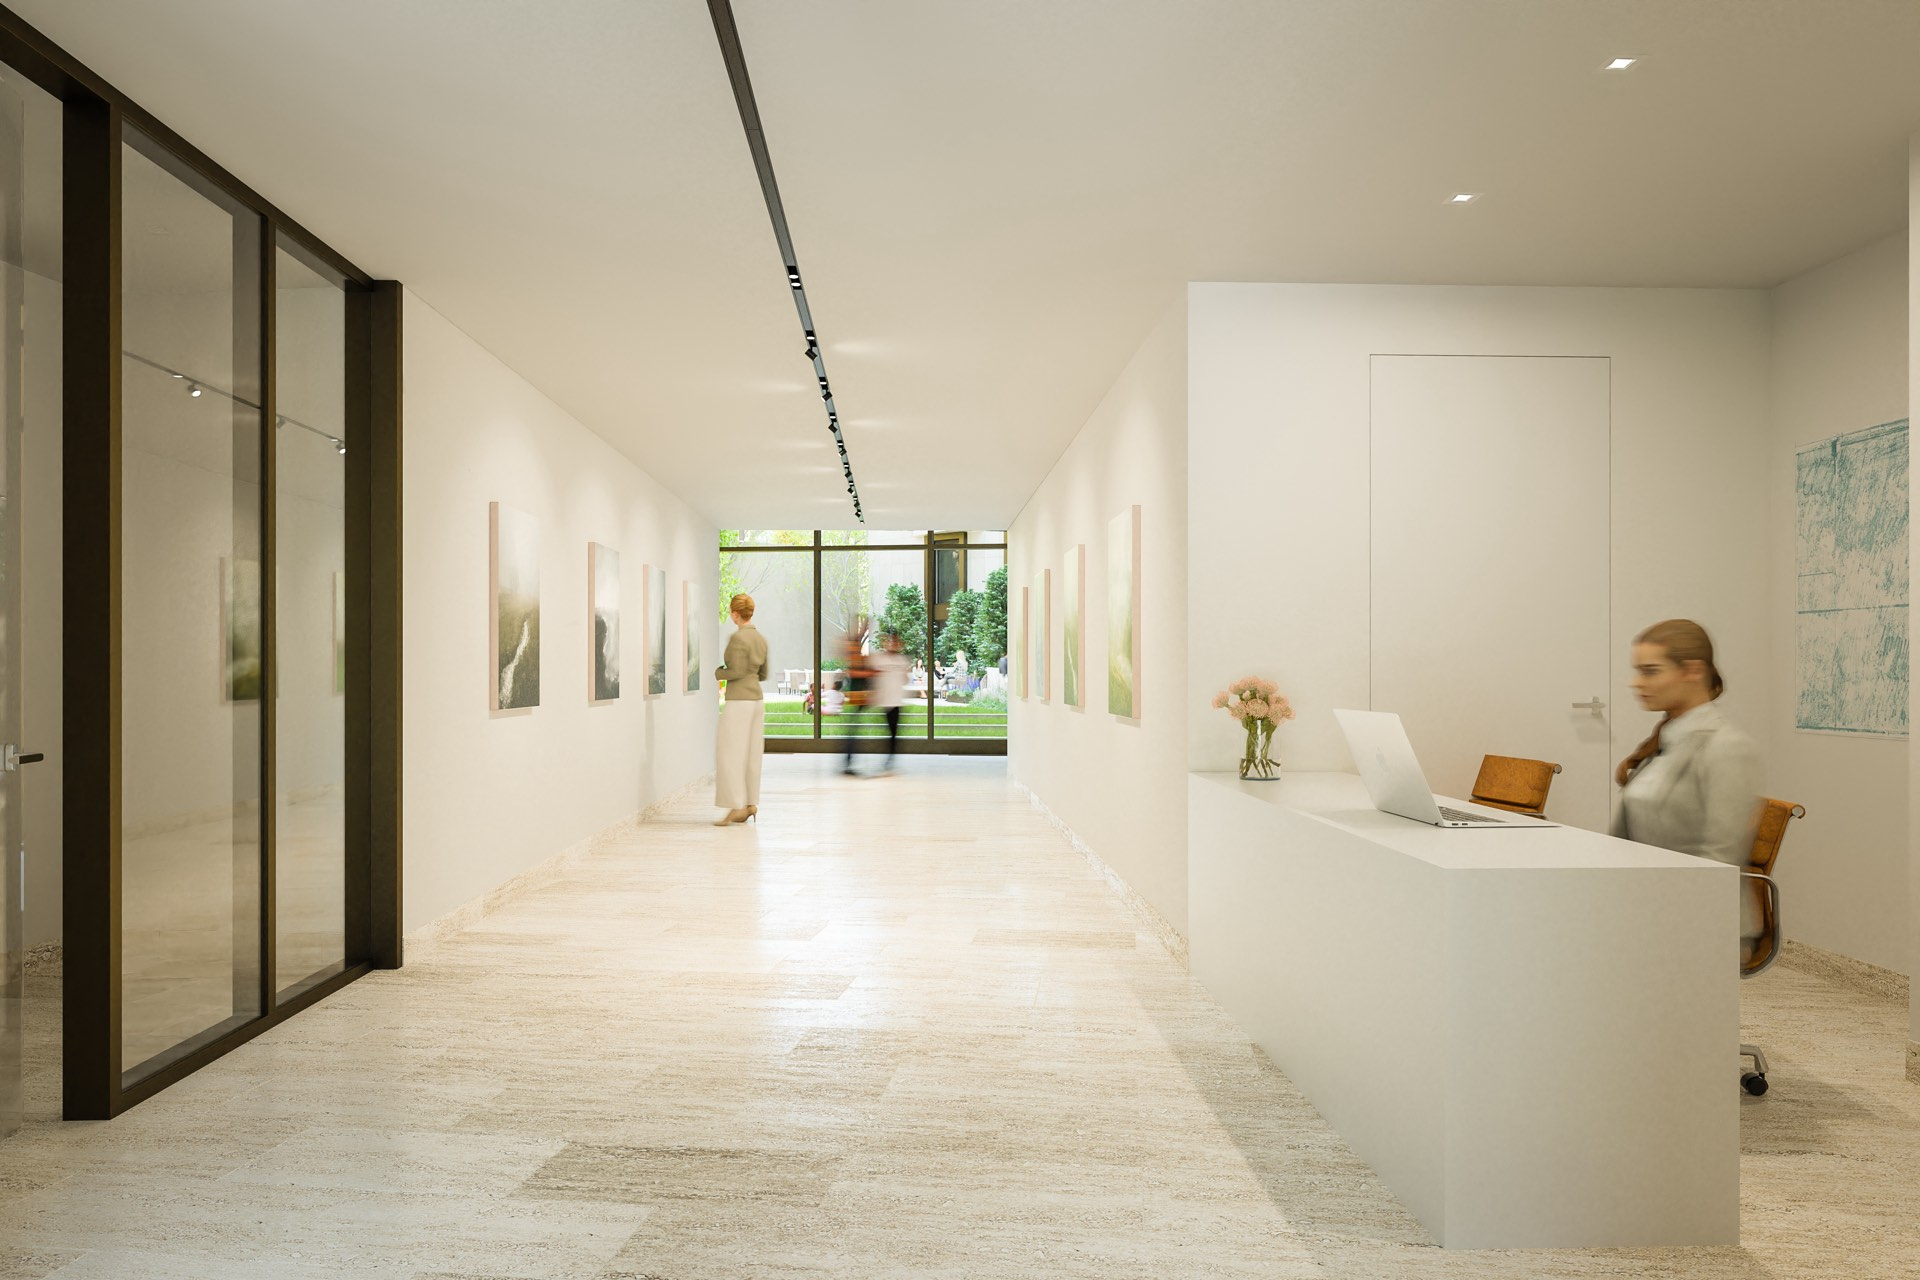 Modern lobby with views to the courtyard